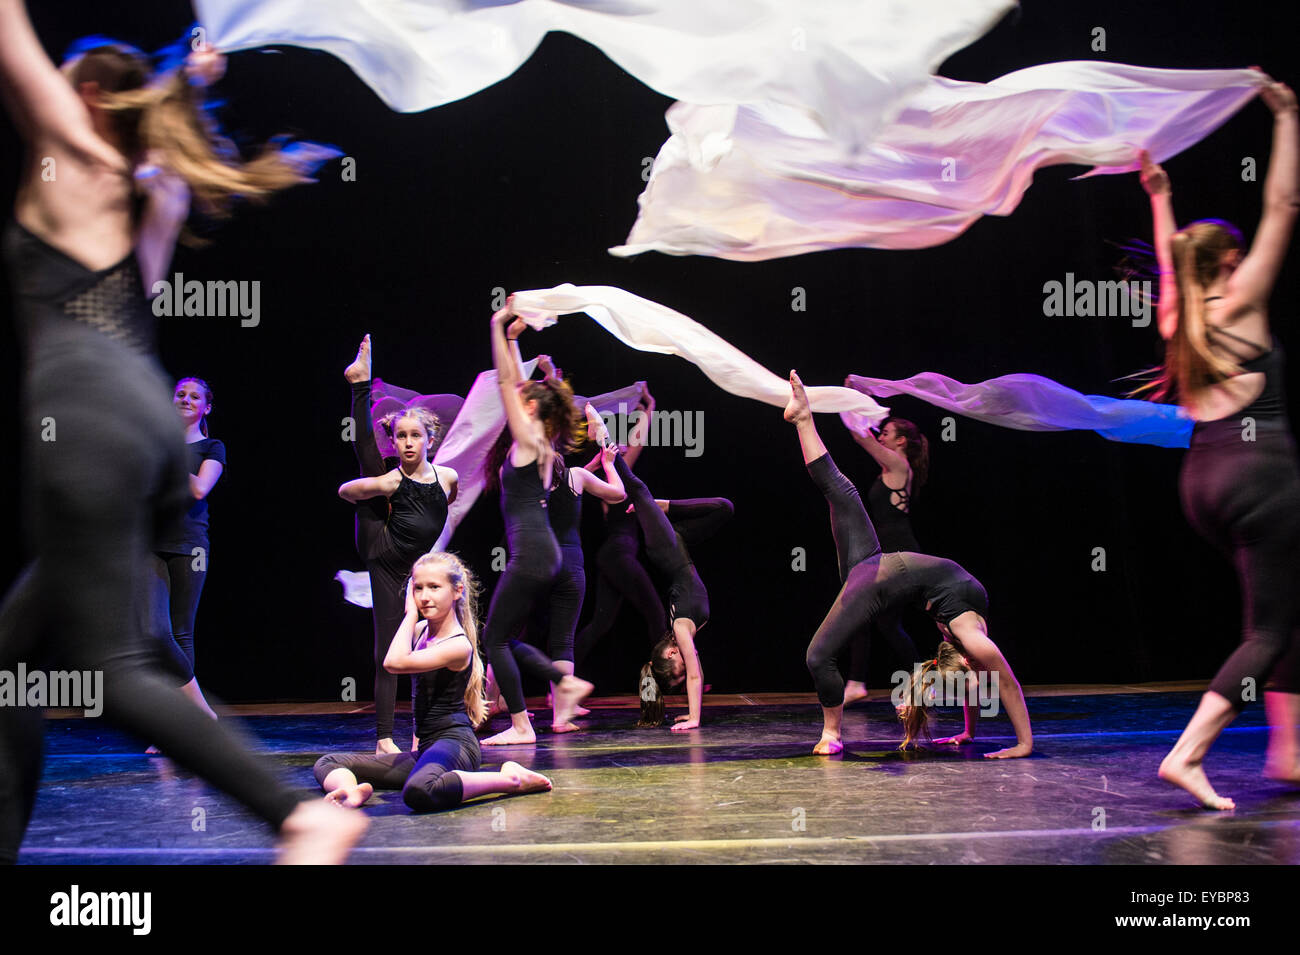 A group of teenage girls performing choreographed dance routines on stage at Aberystwyth Arets Centre Wales UK - Stock Image